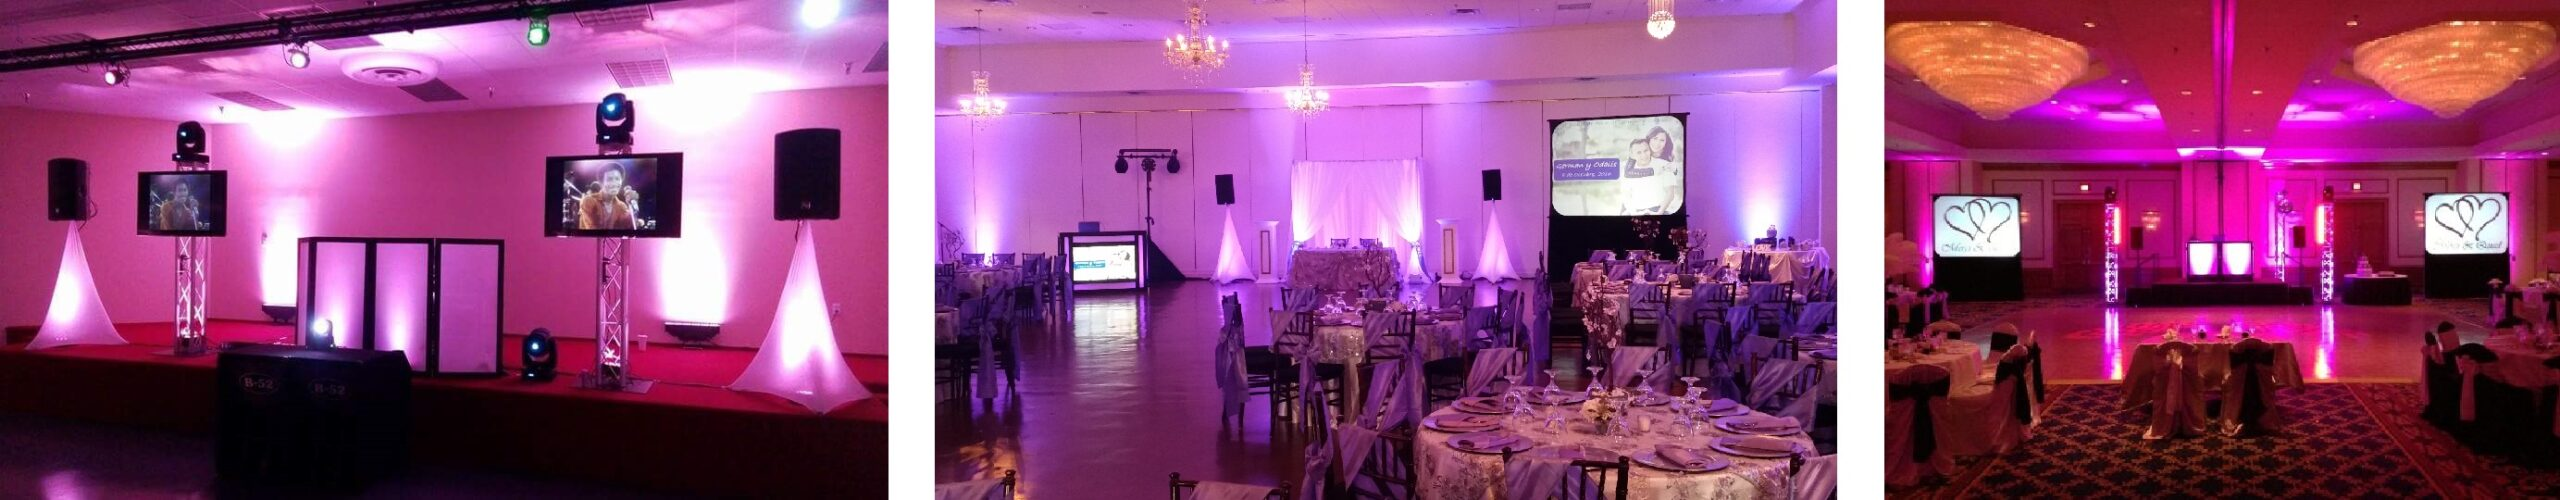 Houston Wedding DJ, Wedding DJs in Houston, Master of Ceremonies, Disc Jockey, MC, EMCEE, Bilingual, Hispanic, Latino, Spanish, Video, A/V, Audio Visual, Flat Screens, Awesome Music Entertainment, AME DJs, Sonido DJ Sammy de Houston